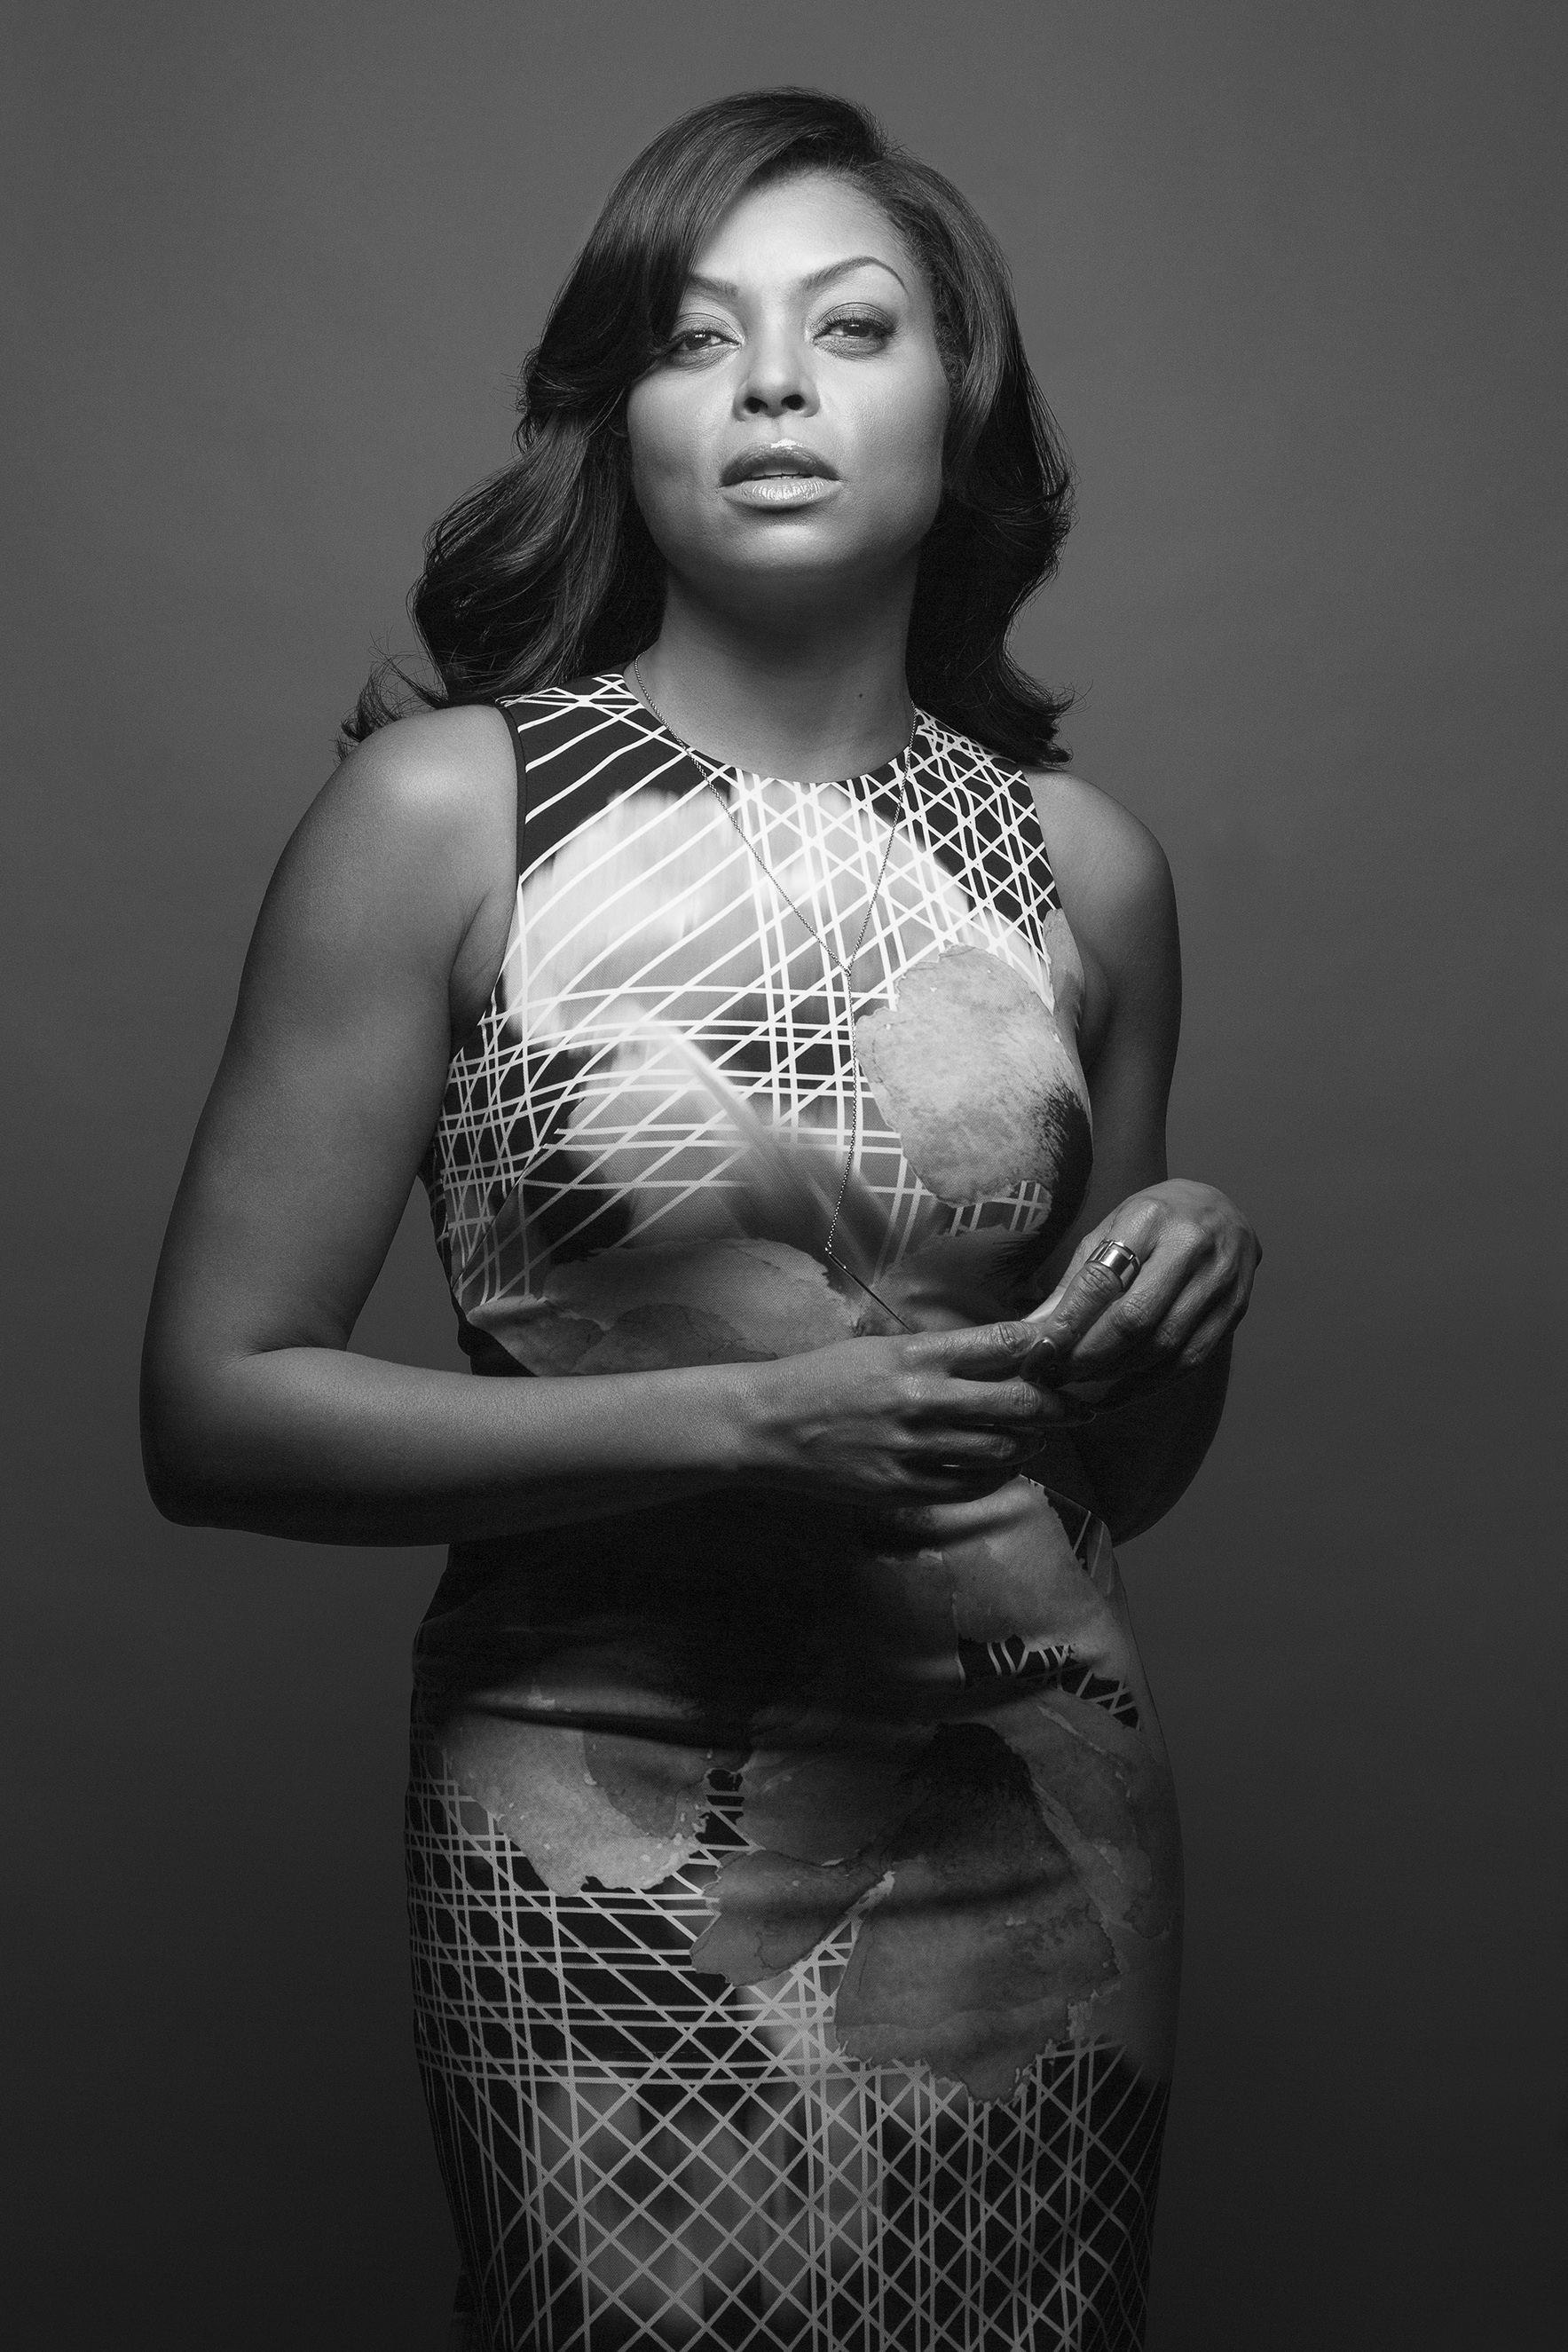 Taraji P. Henson - The first African-American woman to win a Critics' Choice Television Award for Best Actress in a Drama Series